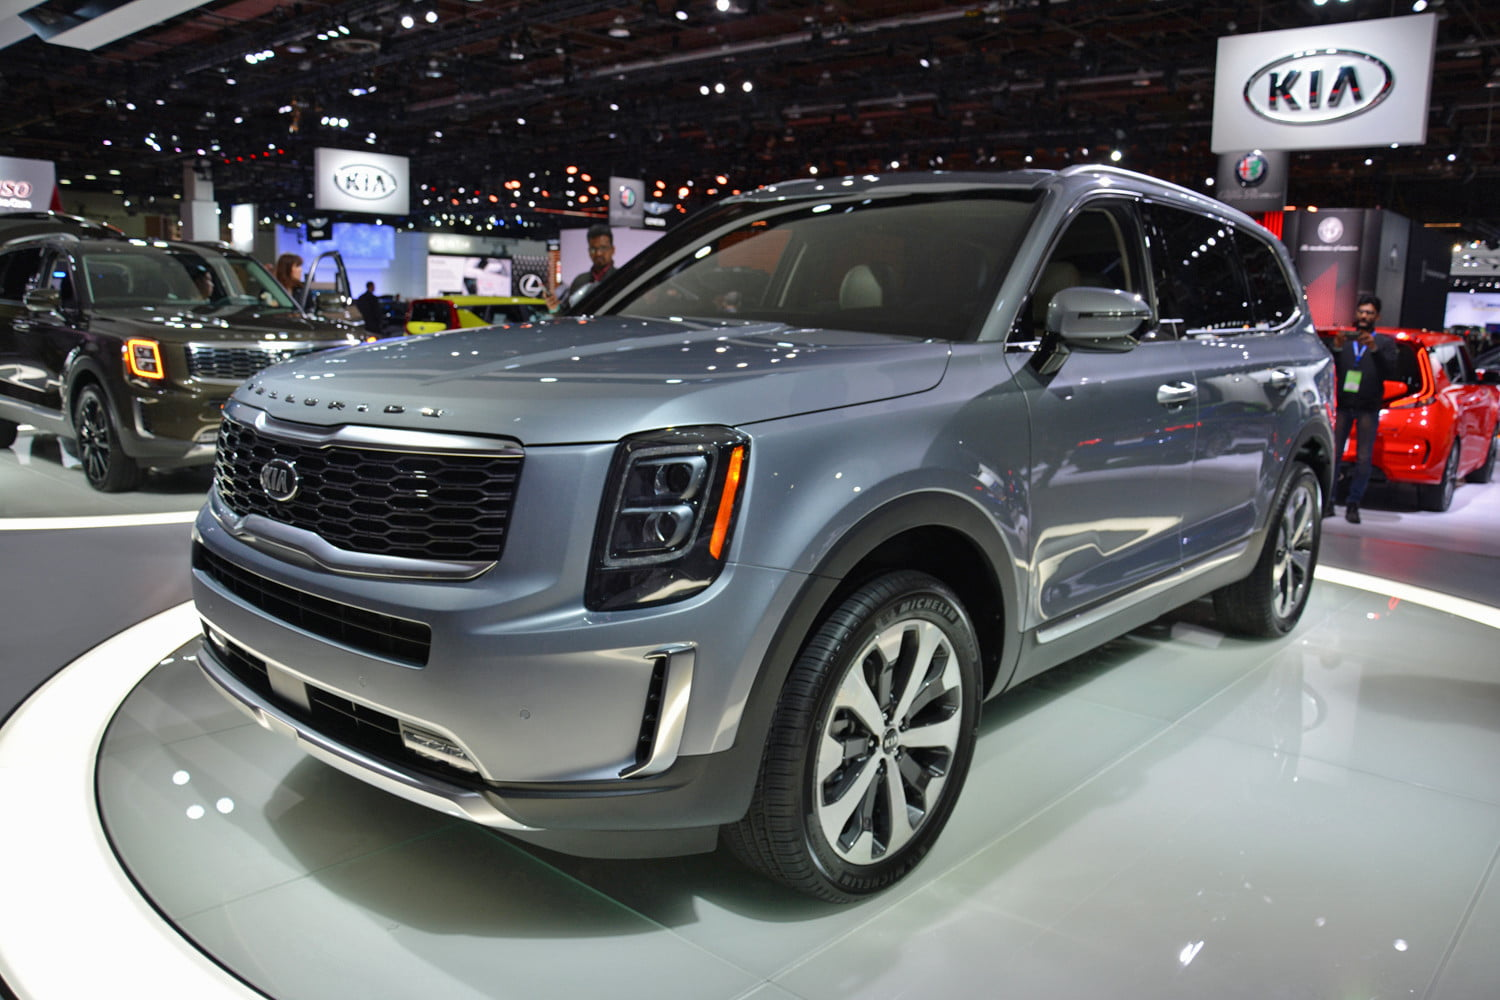 Cars With 3 Rows Of Seats >> 2020 Kia Telluride Suv Unveiled At 2019 Detroit Auto Show Digital